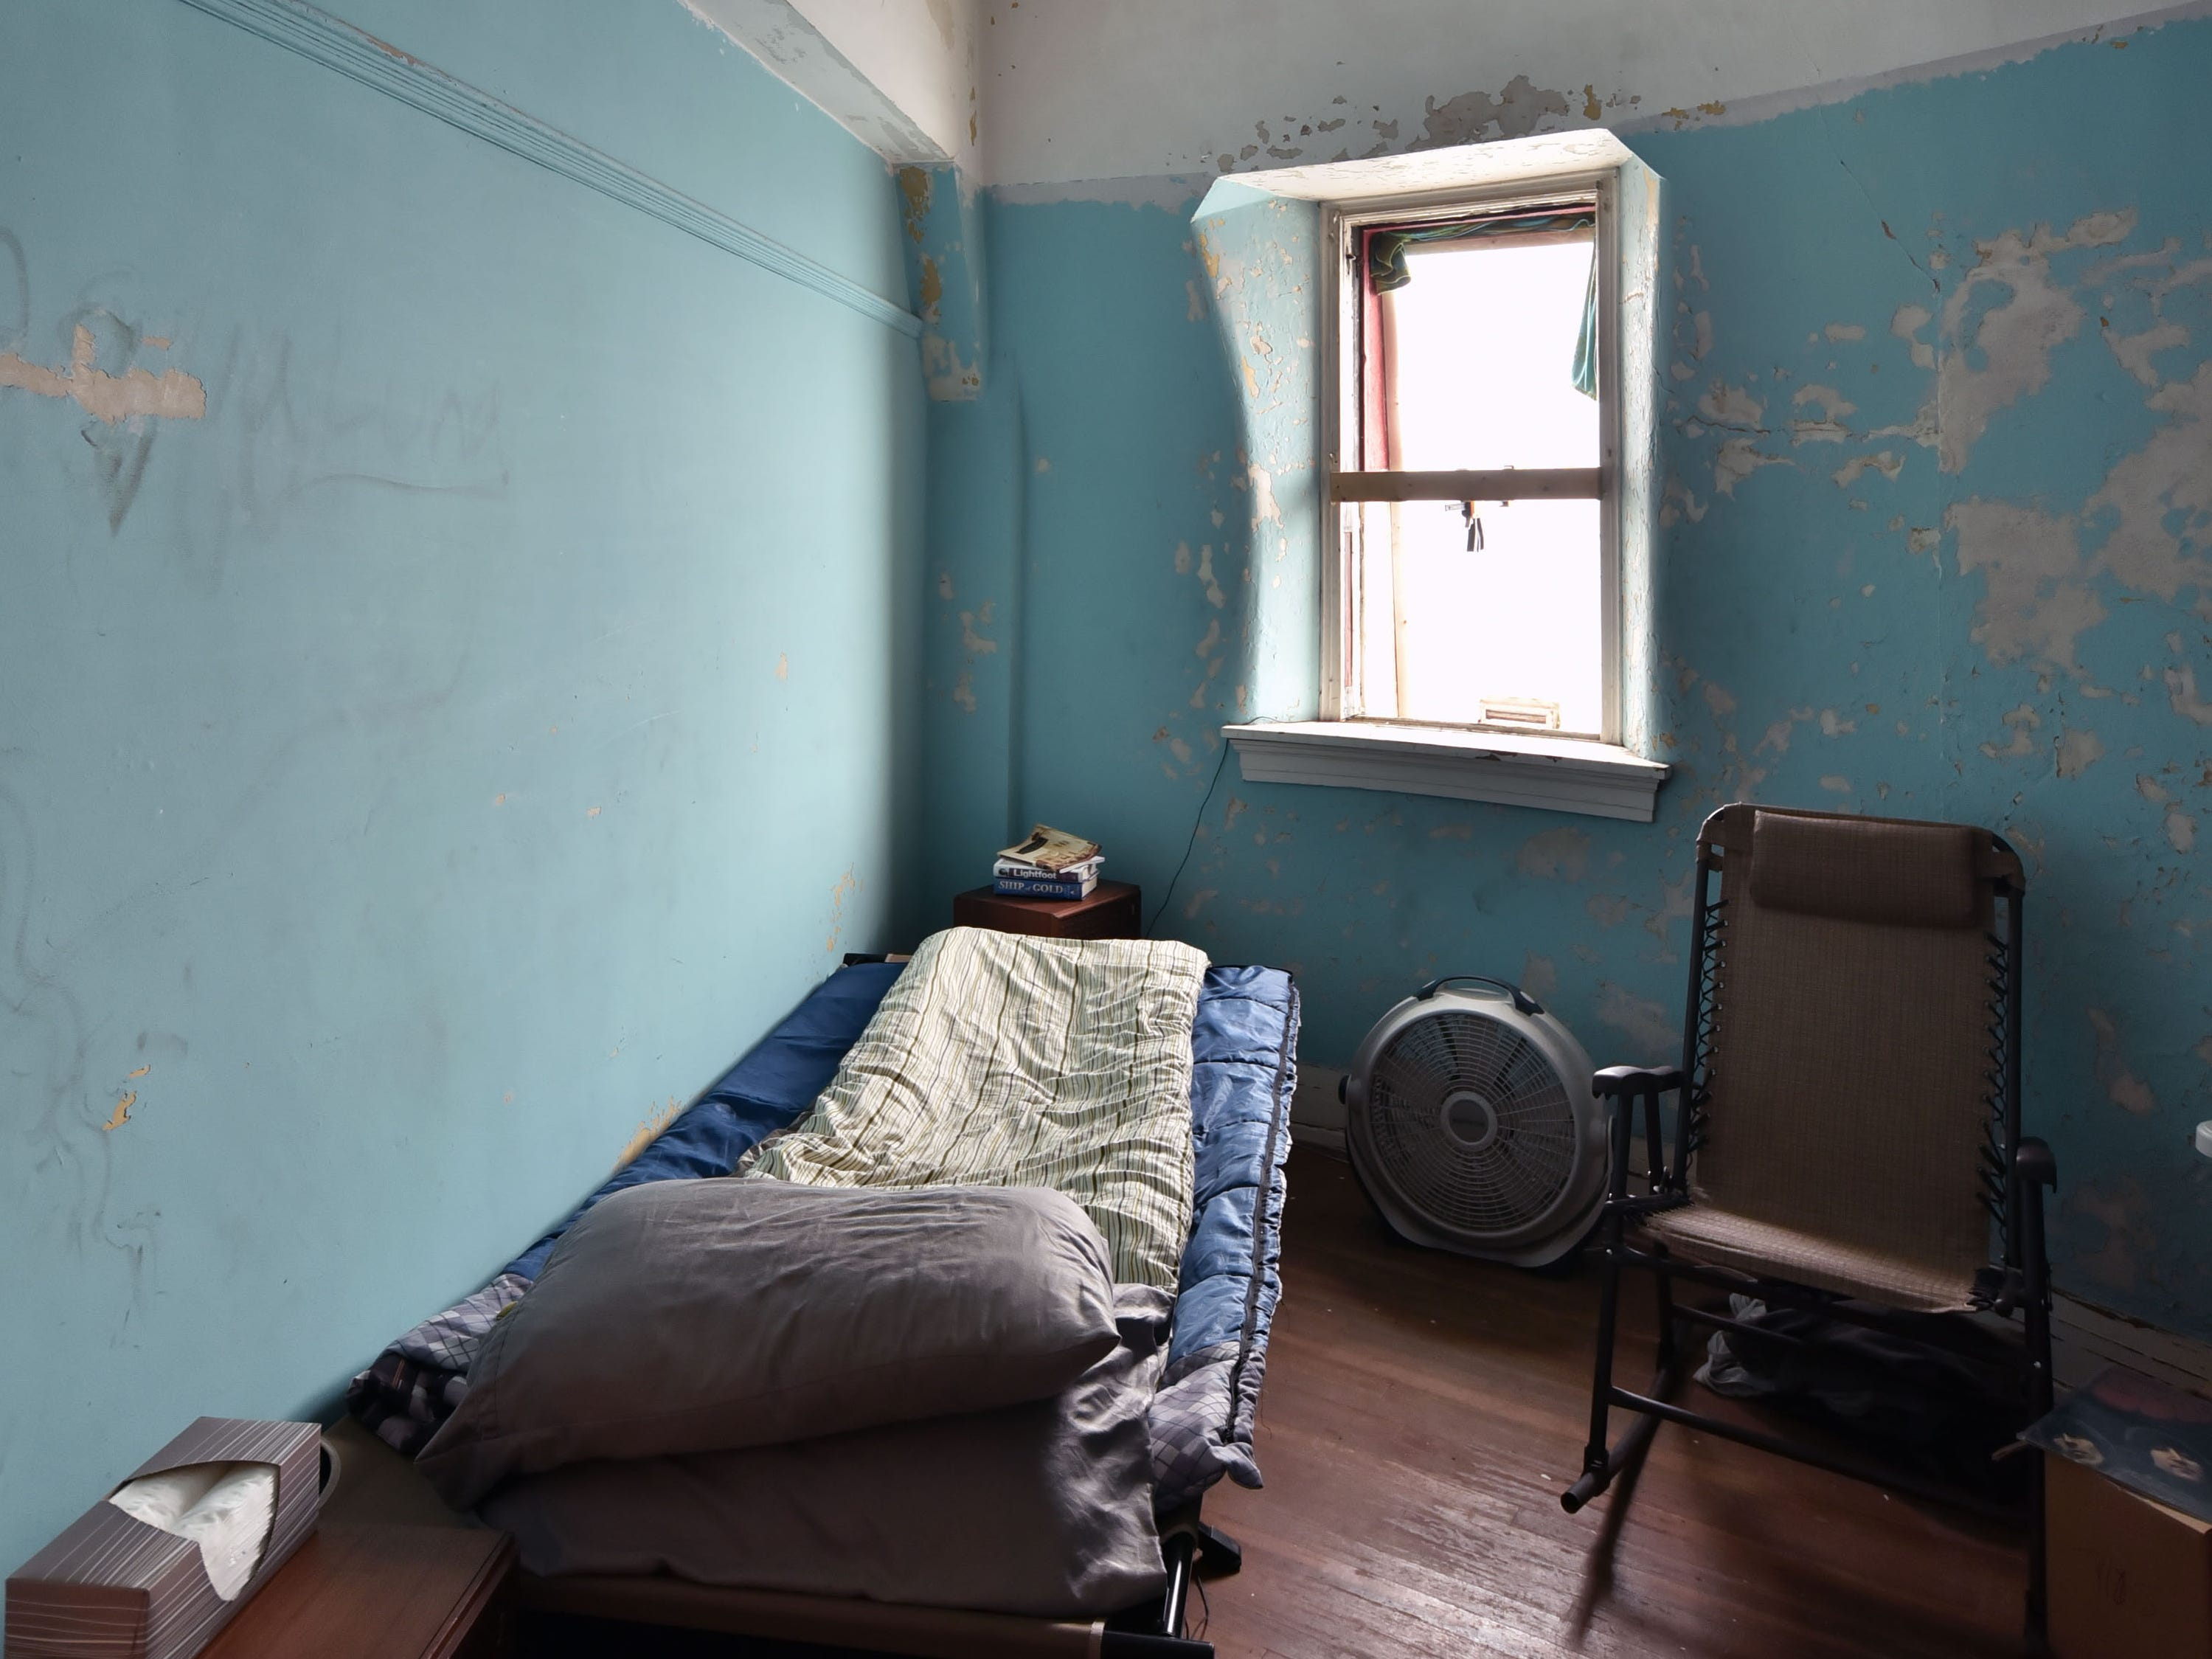 A bedroom in the White Shoal lighthouse, Sunday, Sept. 2, 2018, has not been occupied since 1976.